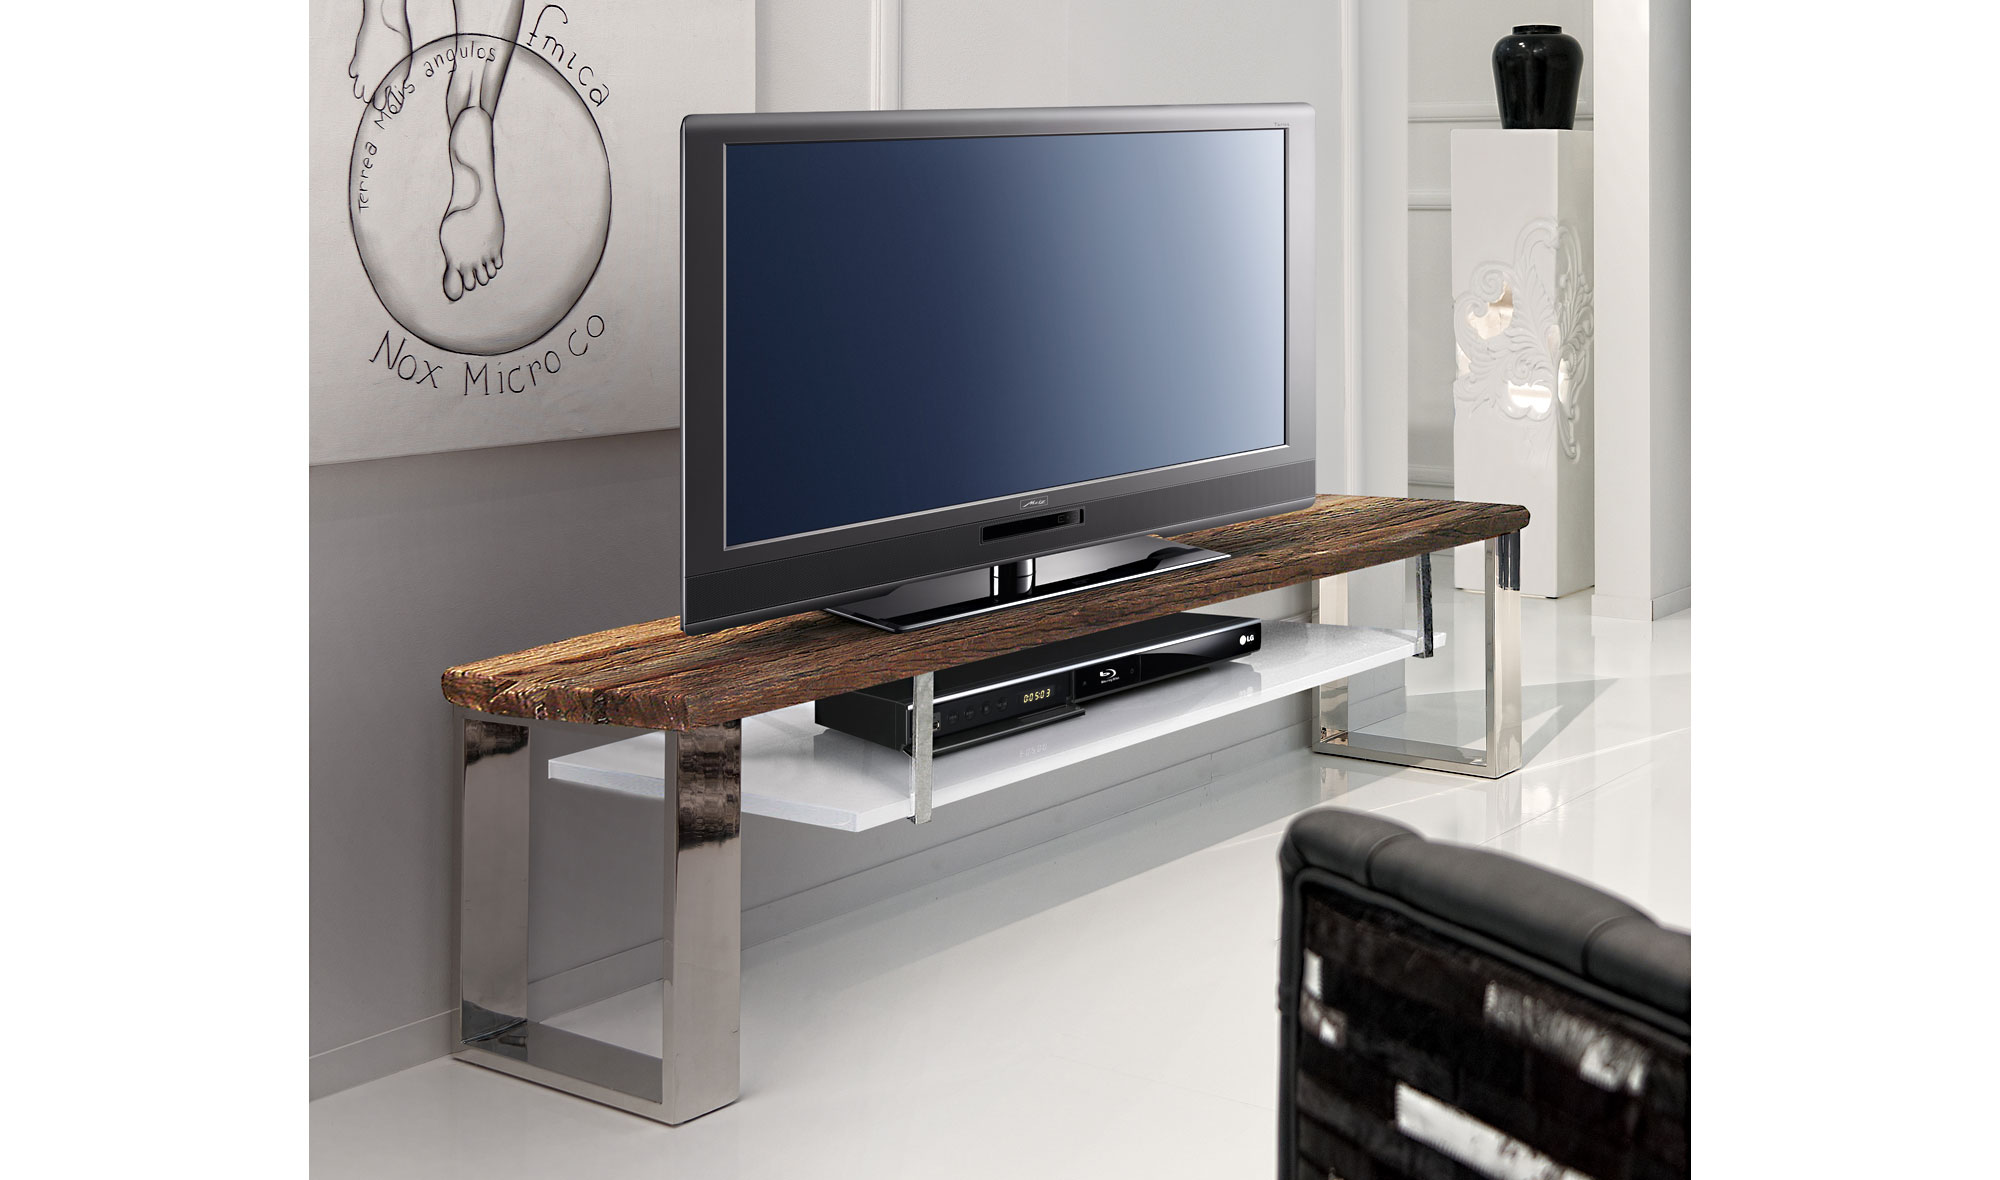 Mueble tv con estante moderno seducti en for Mueble tv moderno